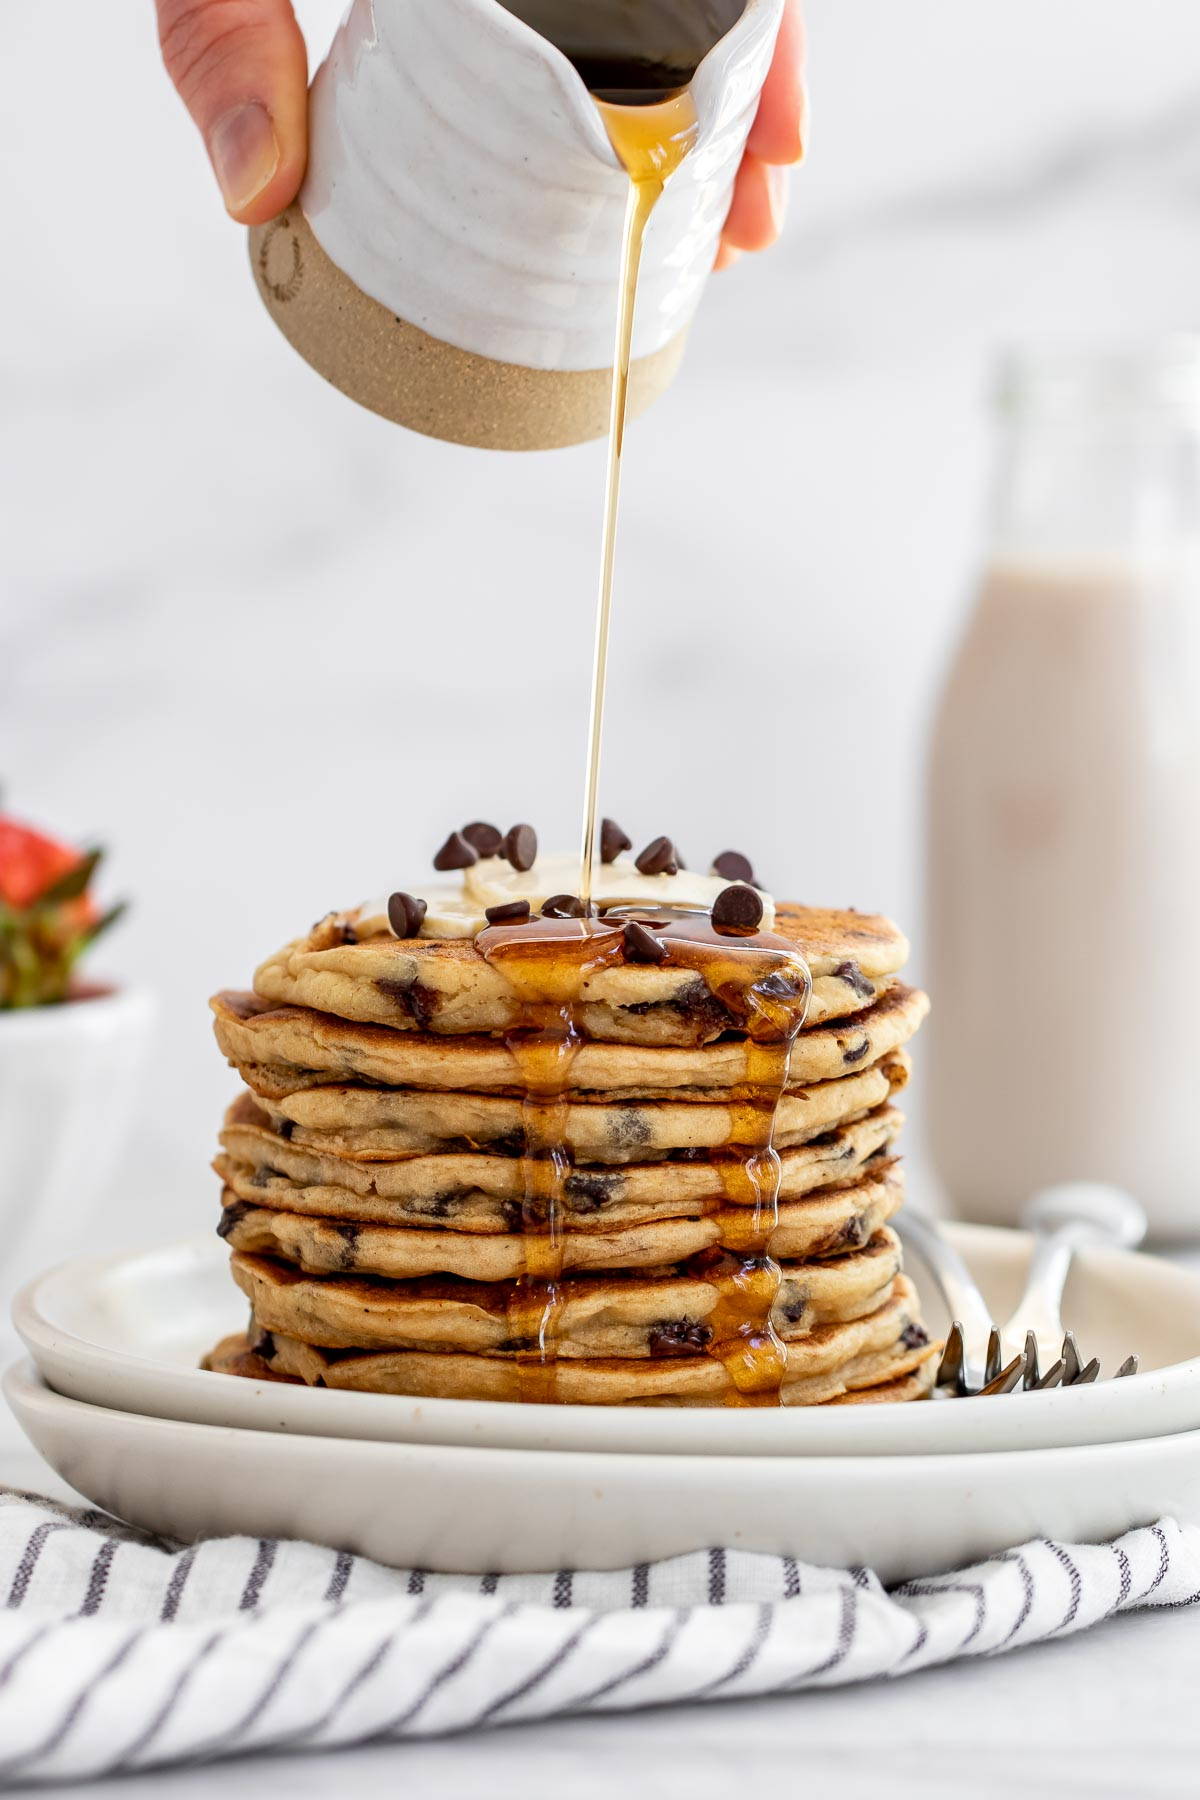 Pouring maple syrup over the gluten free pancakes with a pitcher.